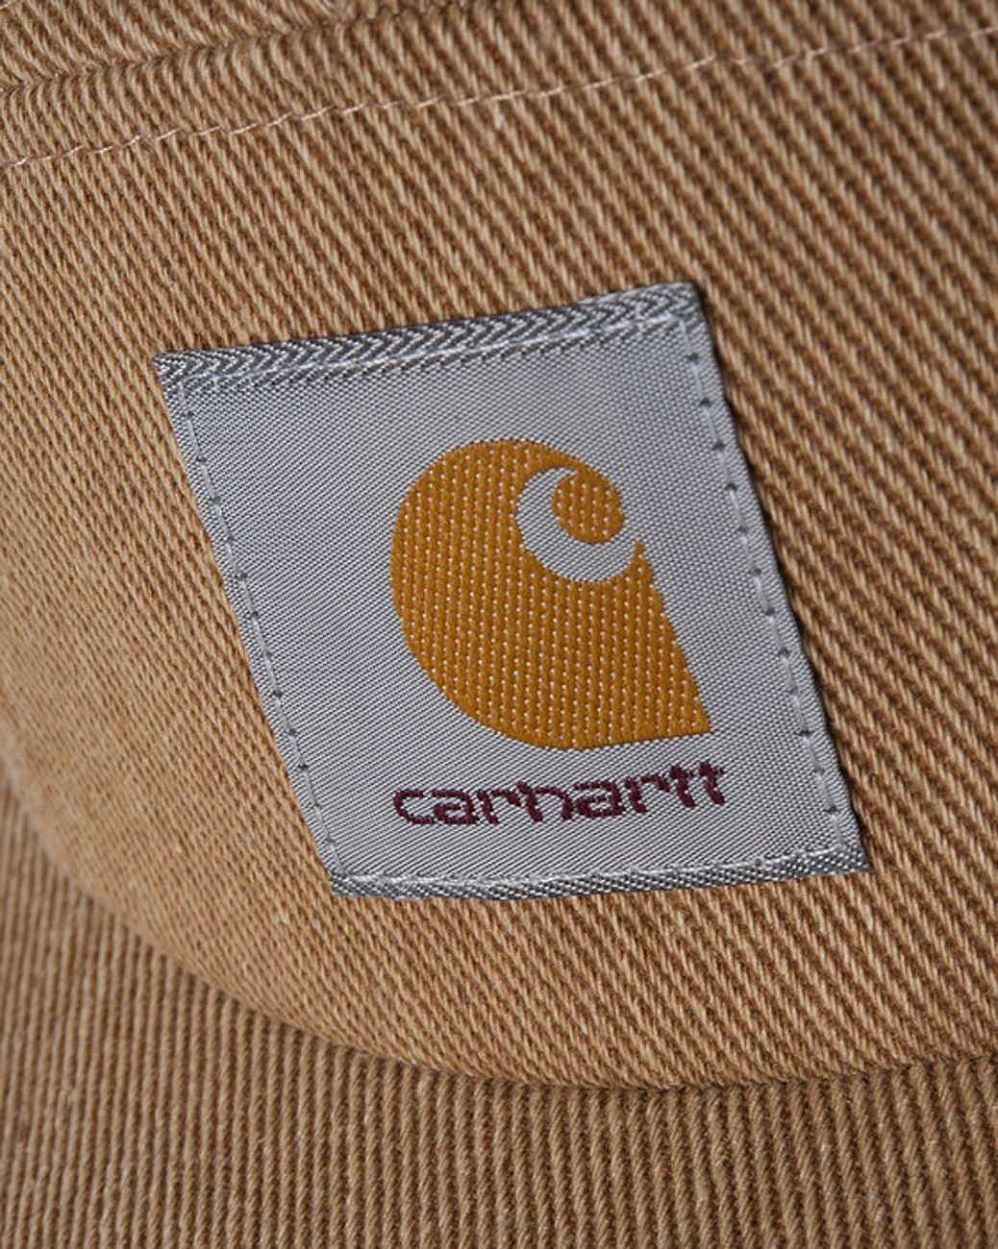 Бейсболка Carhartt 5 Panel Backley leather цена в Москве